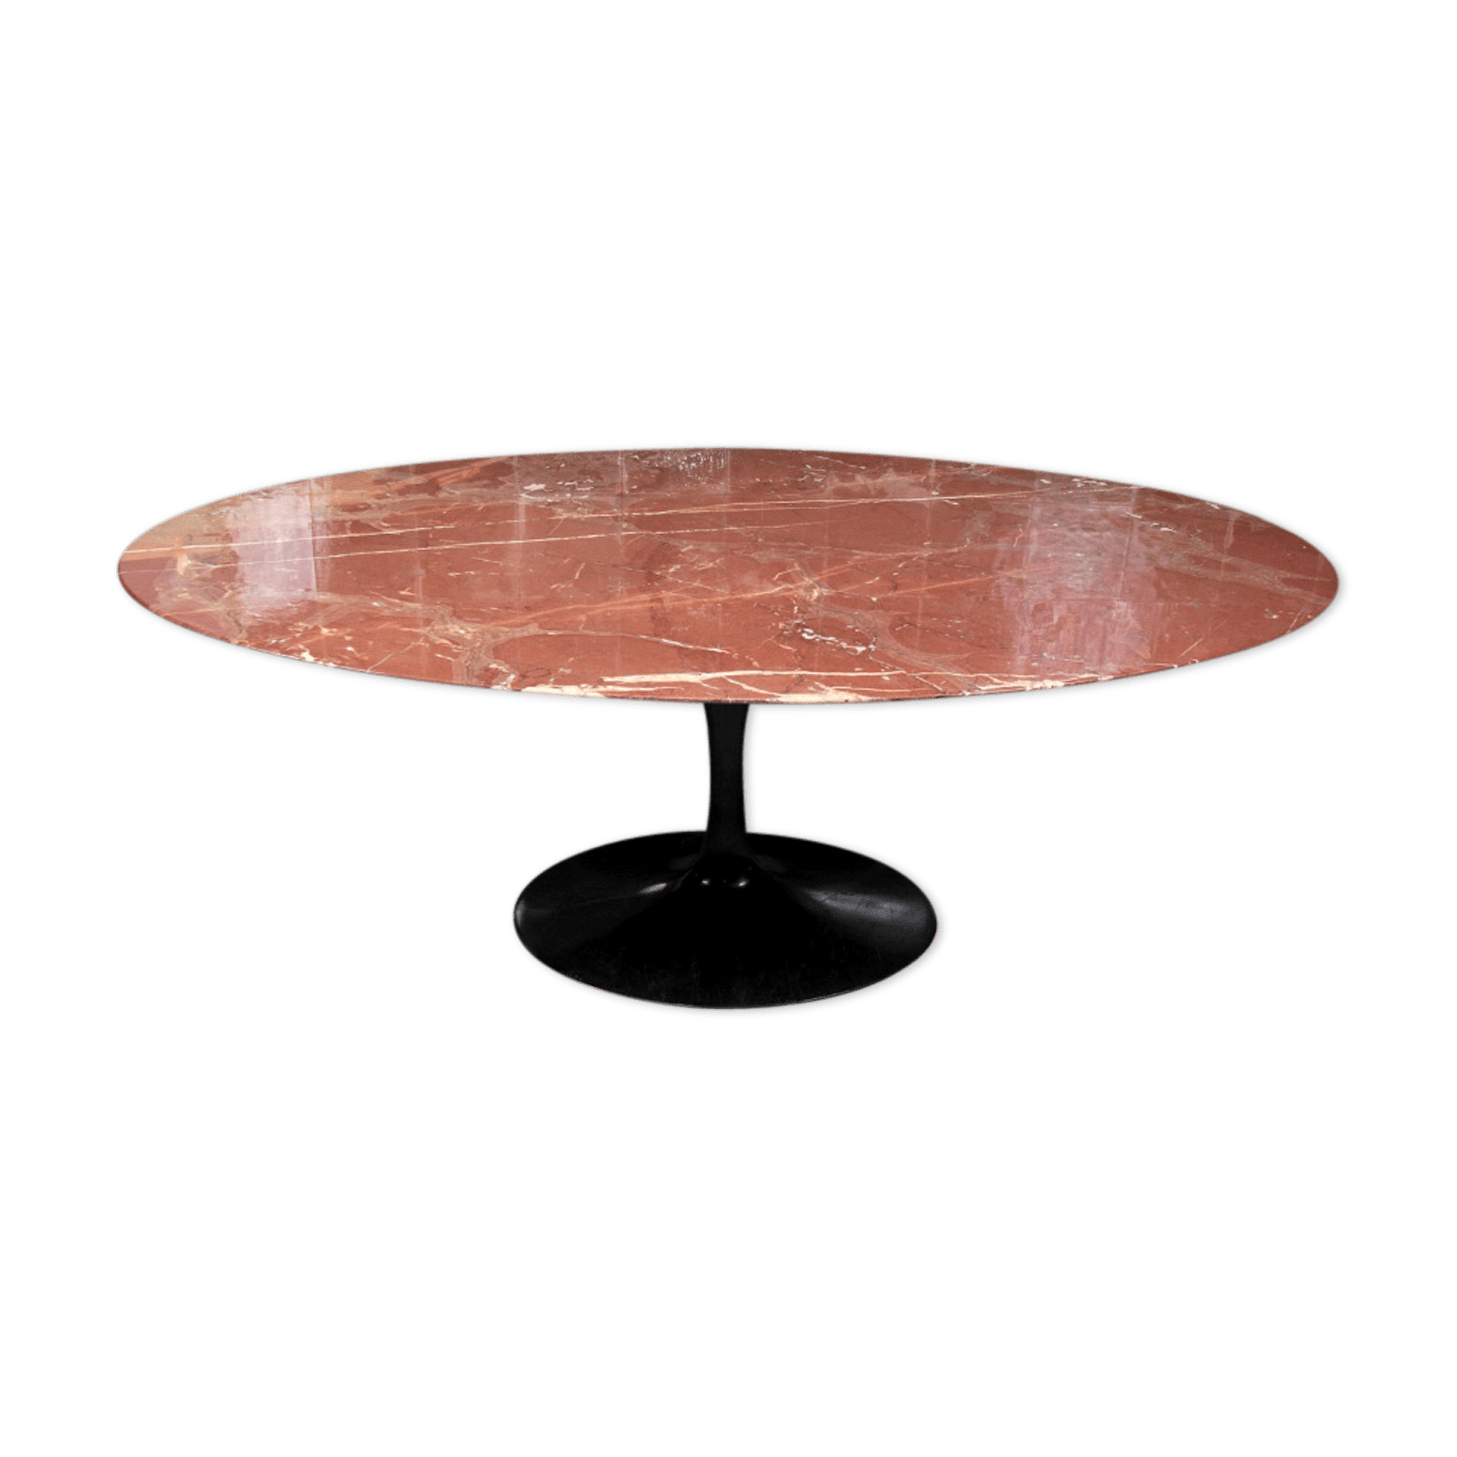 Table Ovale Design Stunning Table Tulipe Knoll Ovale En Marbre Dualicante